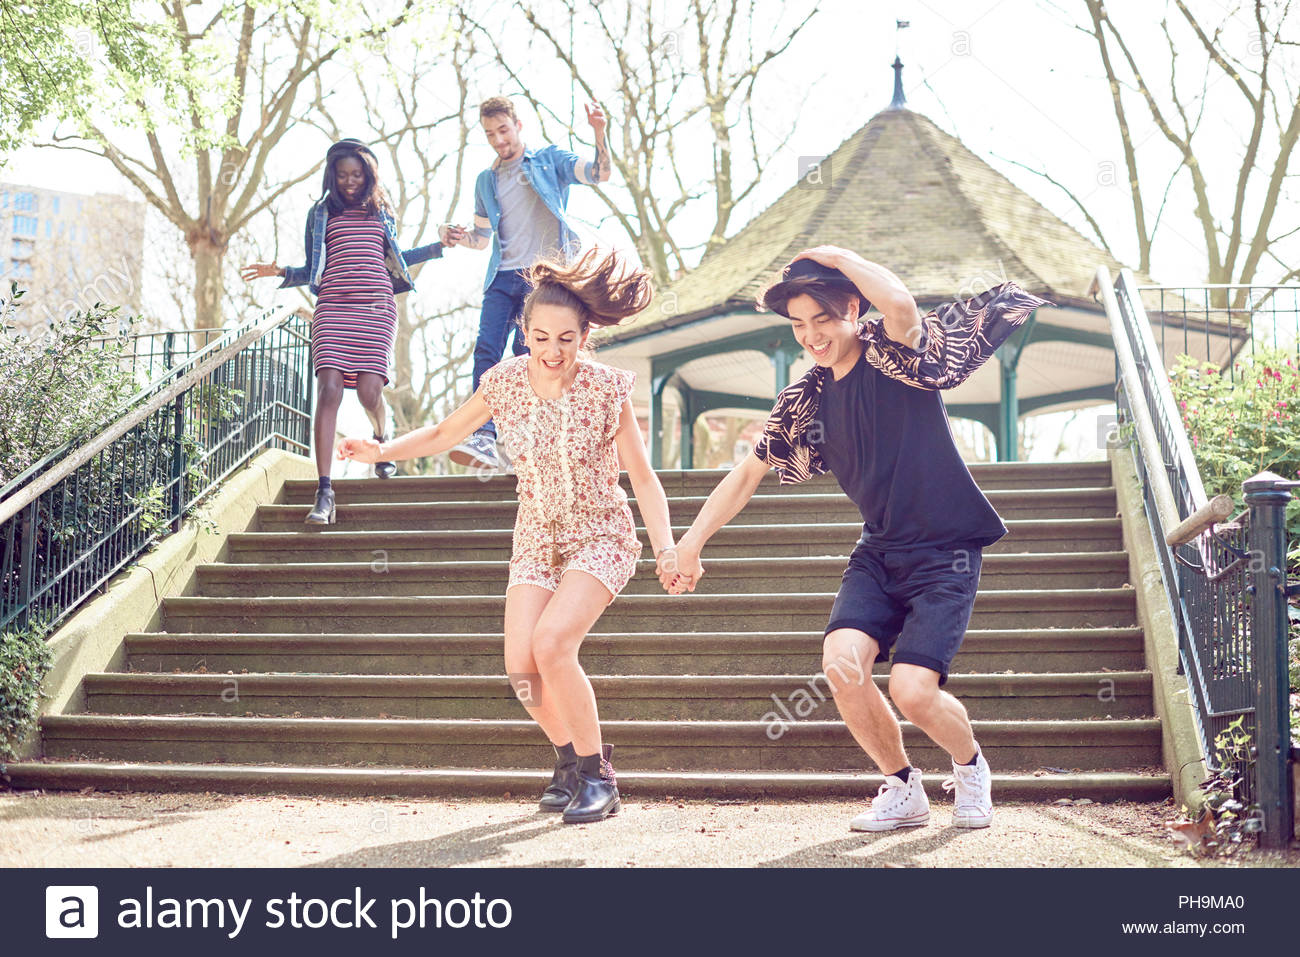 Teenage friends jumping down steps at park Photo Stock